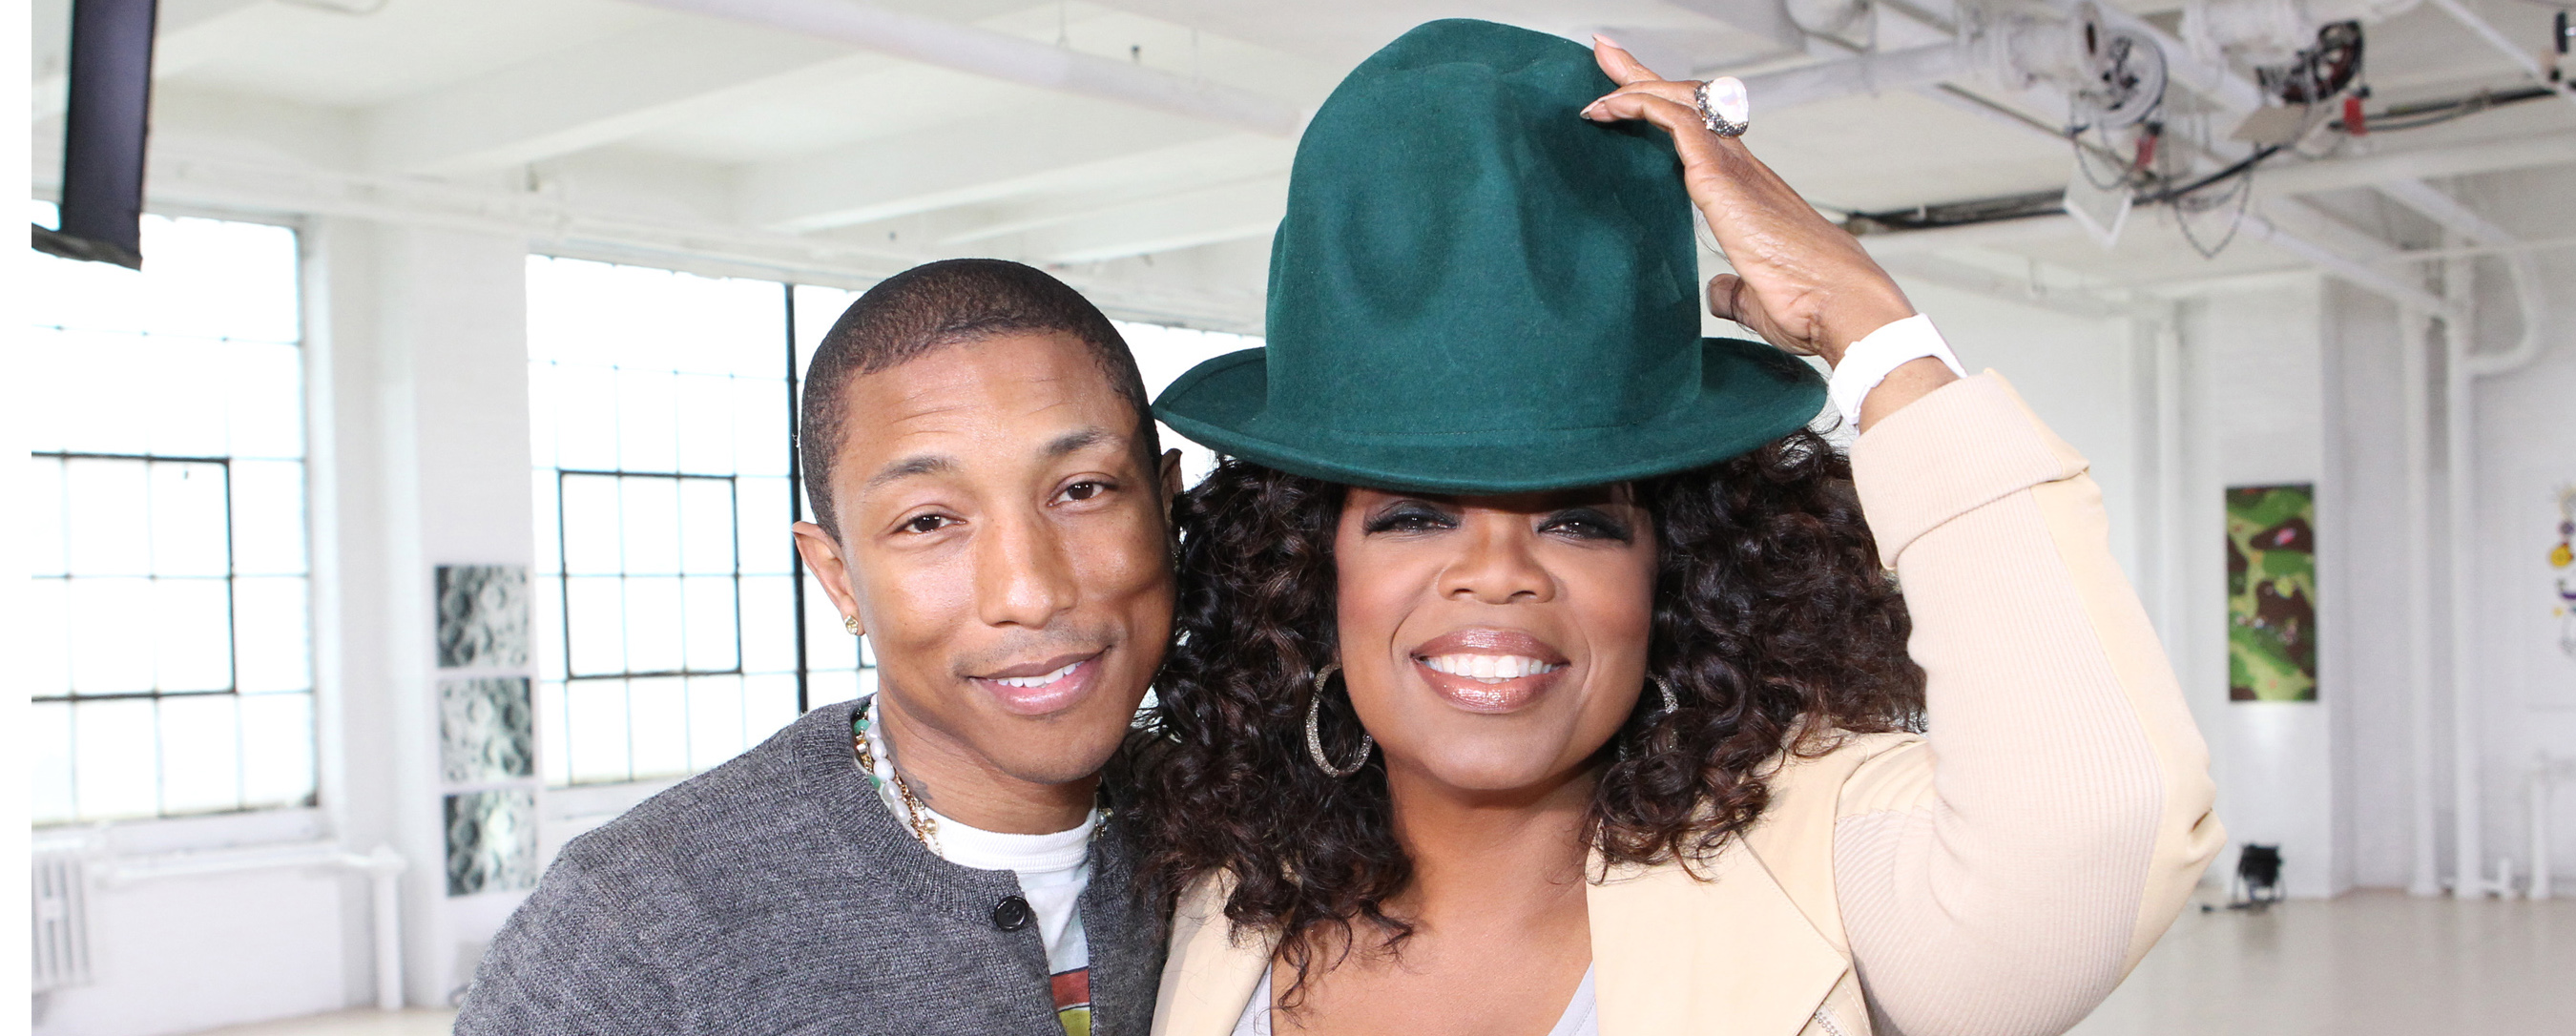 Pharrell with Oprah and His Trademark Vivienne Westwood Hat